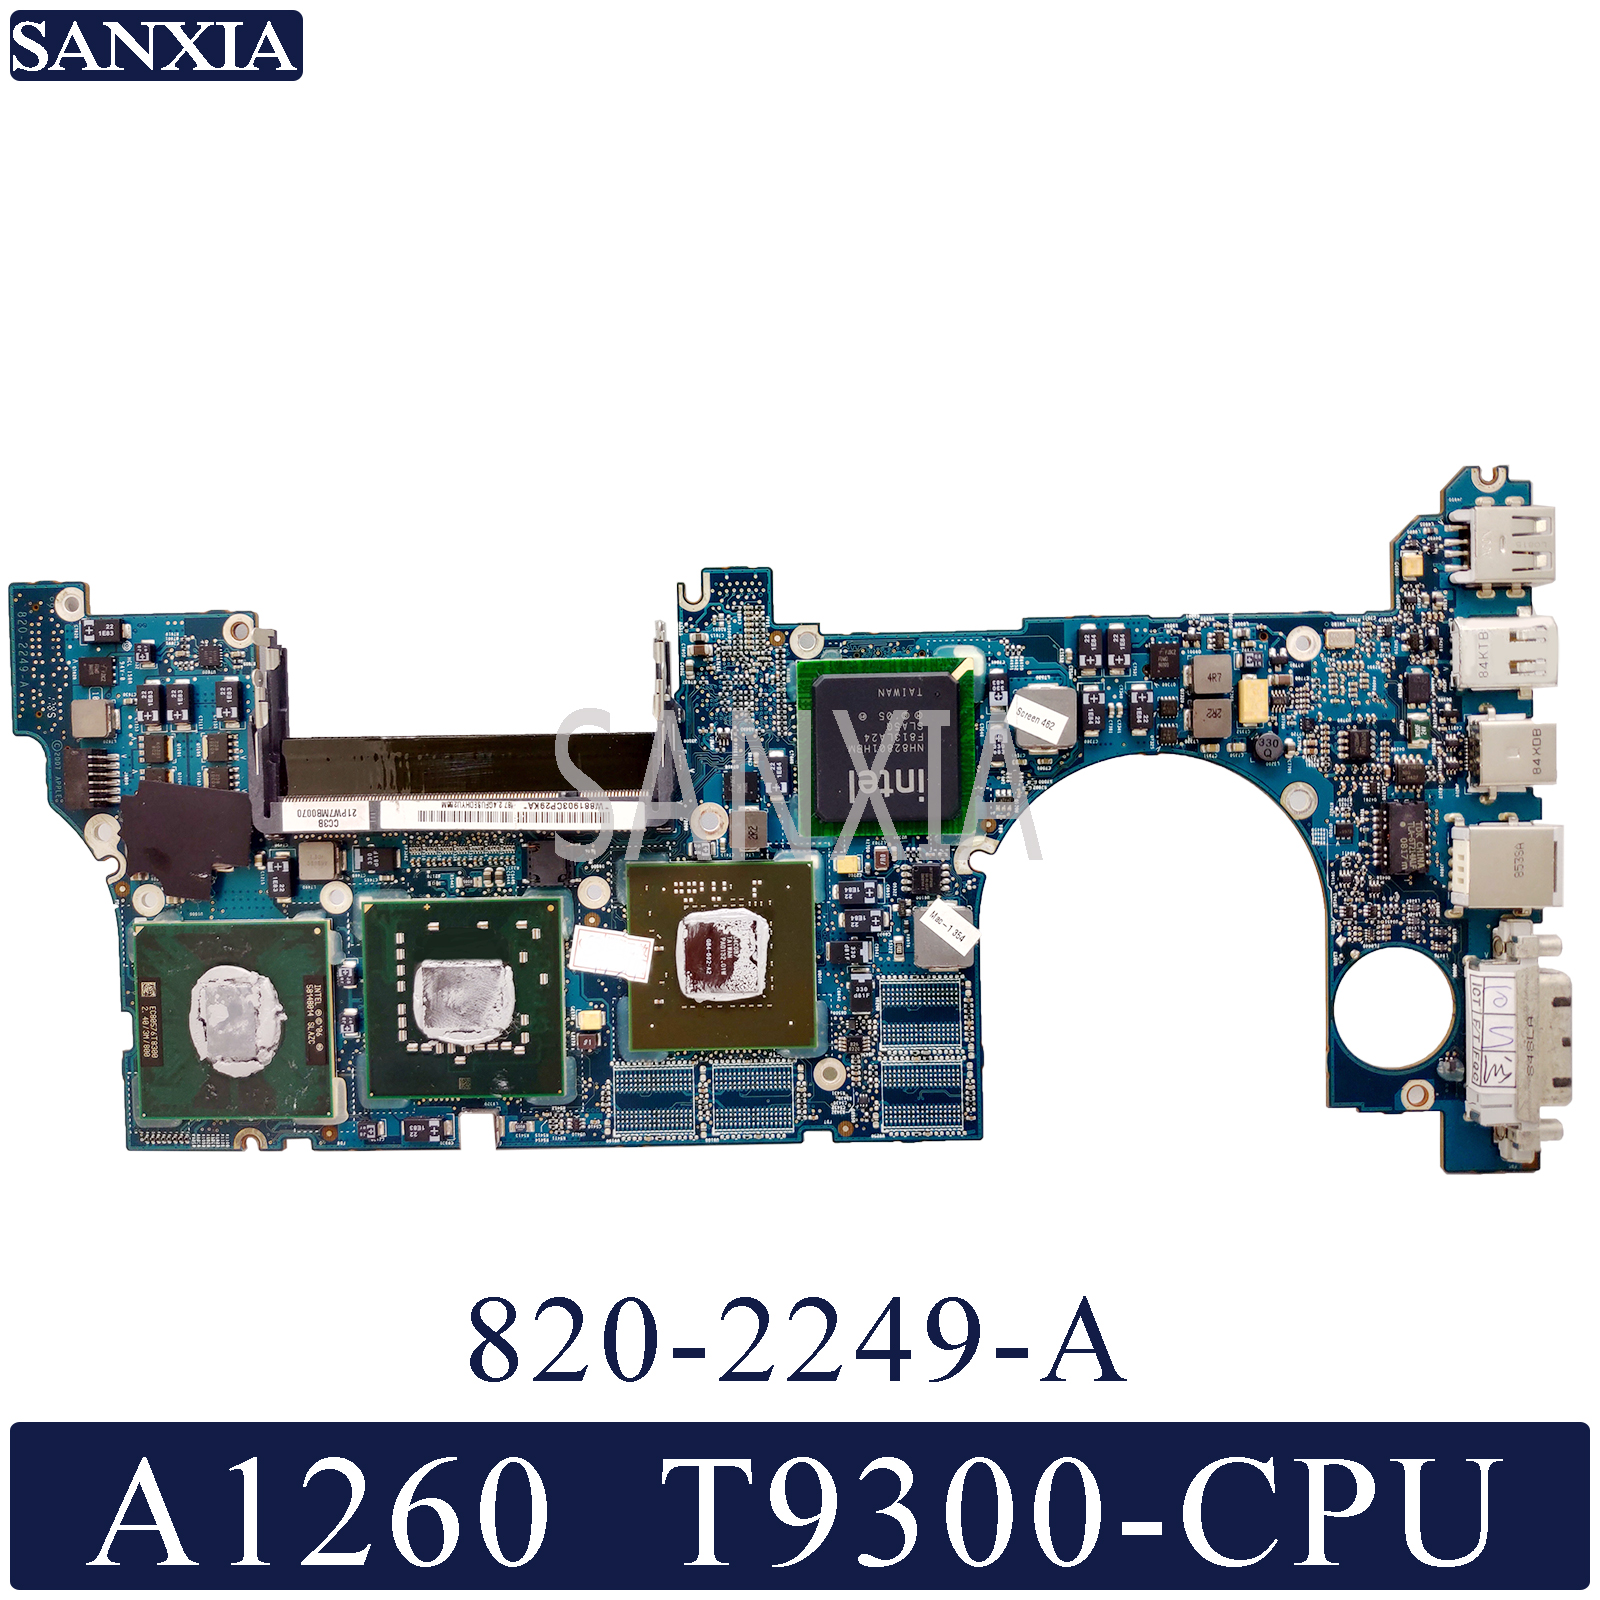 KEFU 820-2249-A Laptop motherboard for Apple MacBook Pro A1260 original mainboard <font><b>T9300</b></font> image